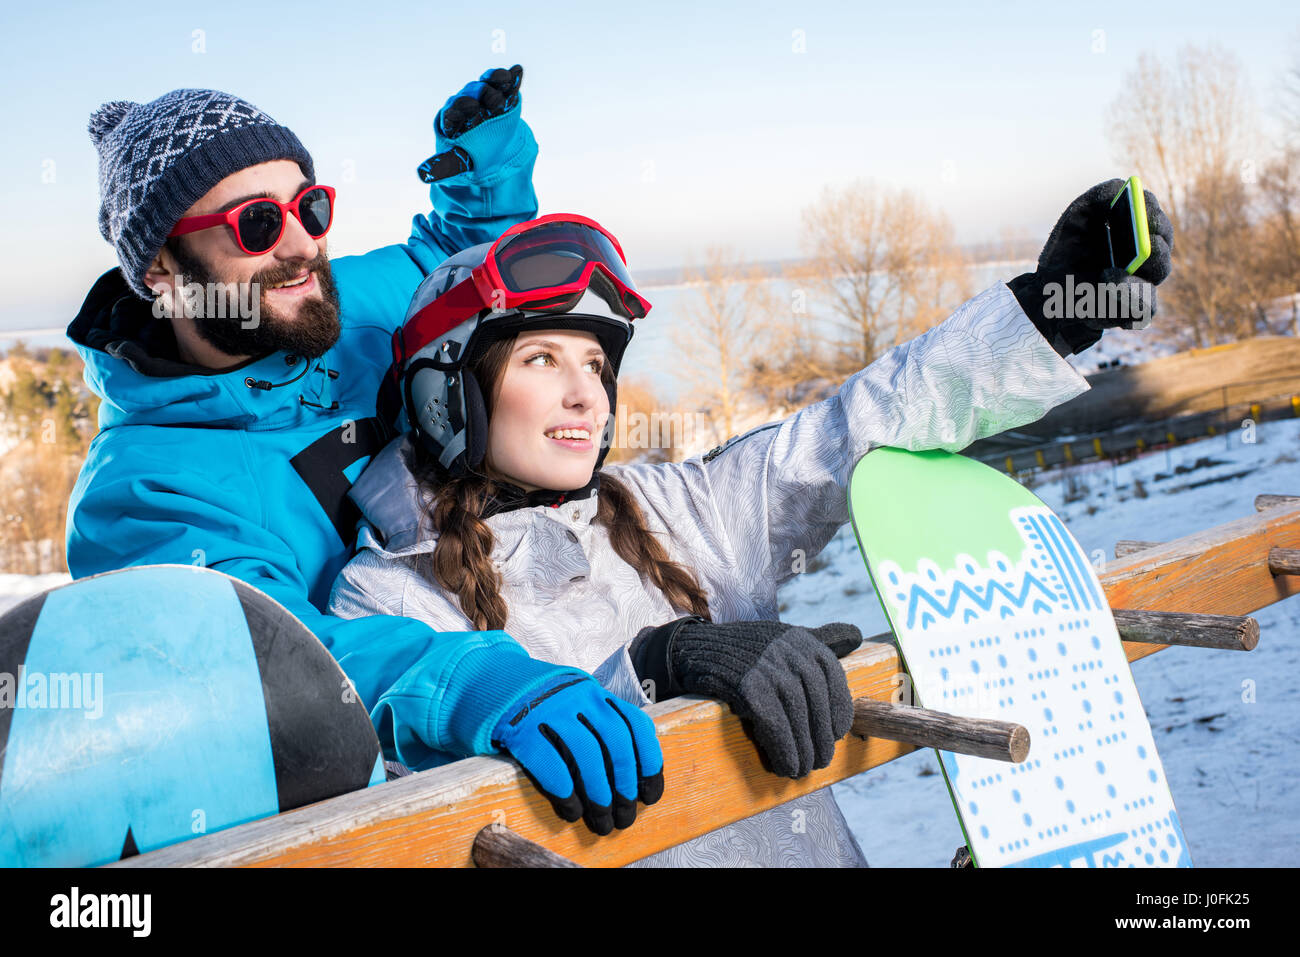 Young man and woman embracing and taking selfie with snowboards - Stock Image